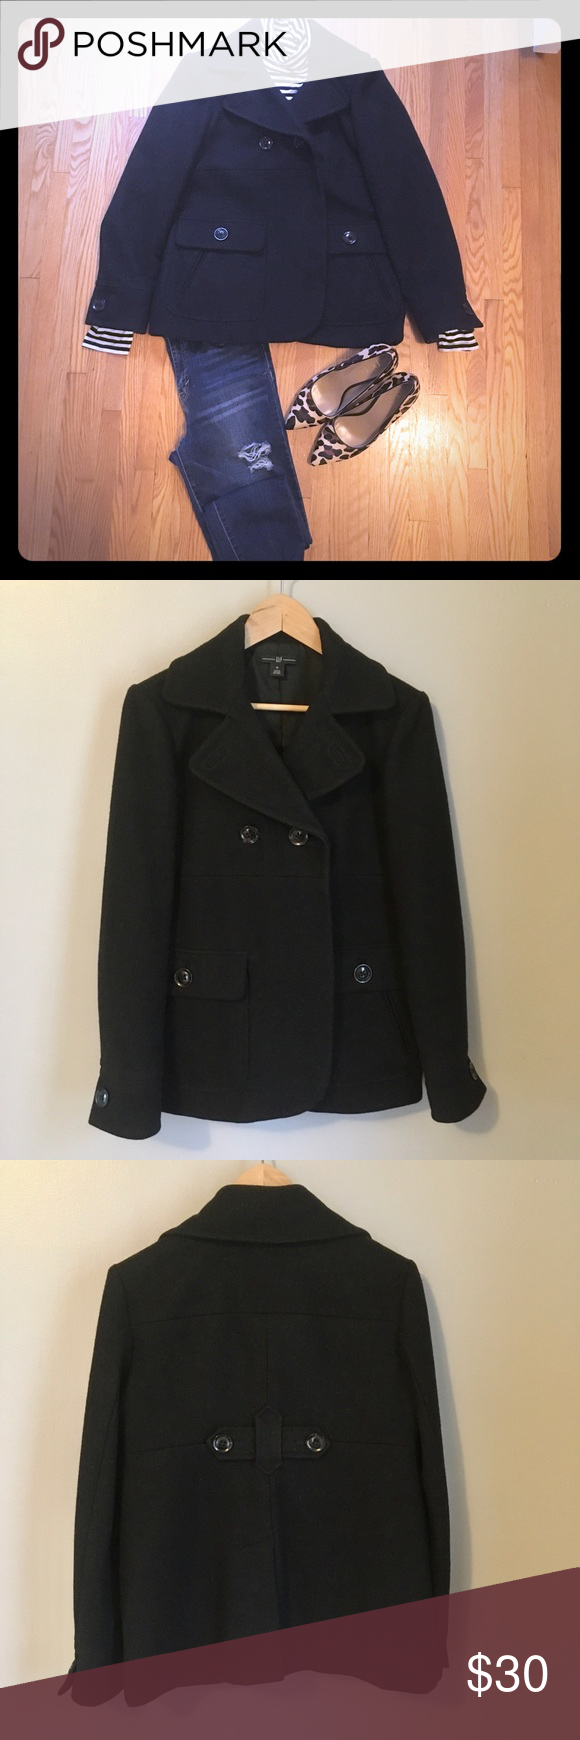 GAP Wool Charcoal Black Pea Coat This is a beautiful, modern take on a short, ch…